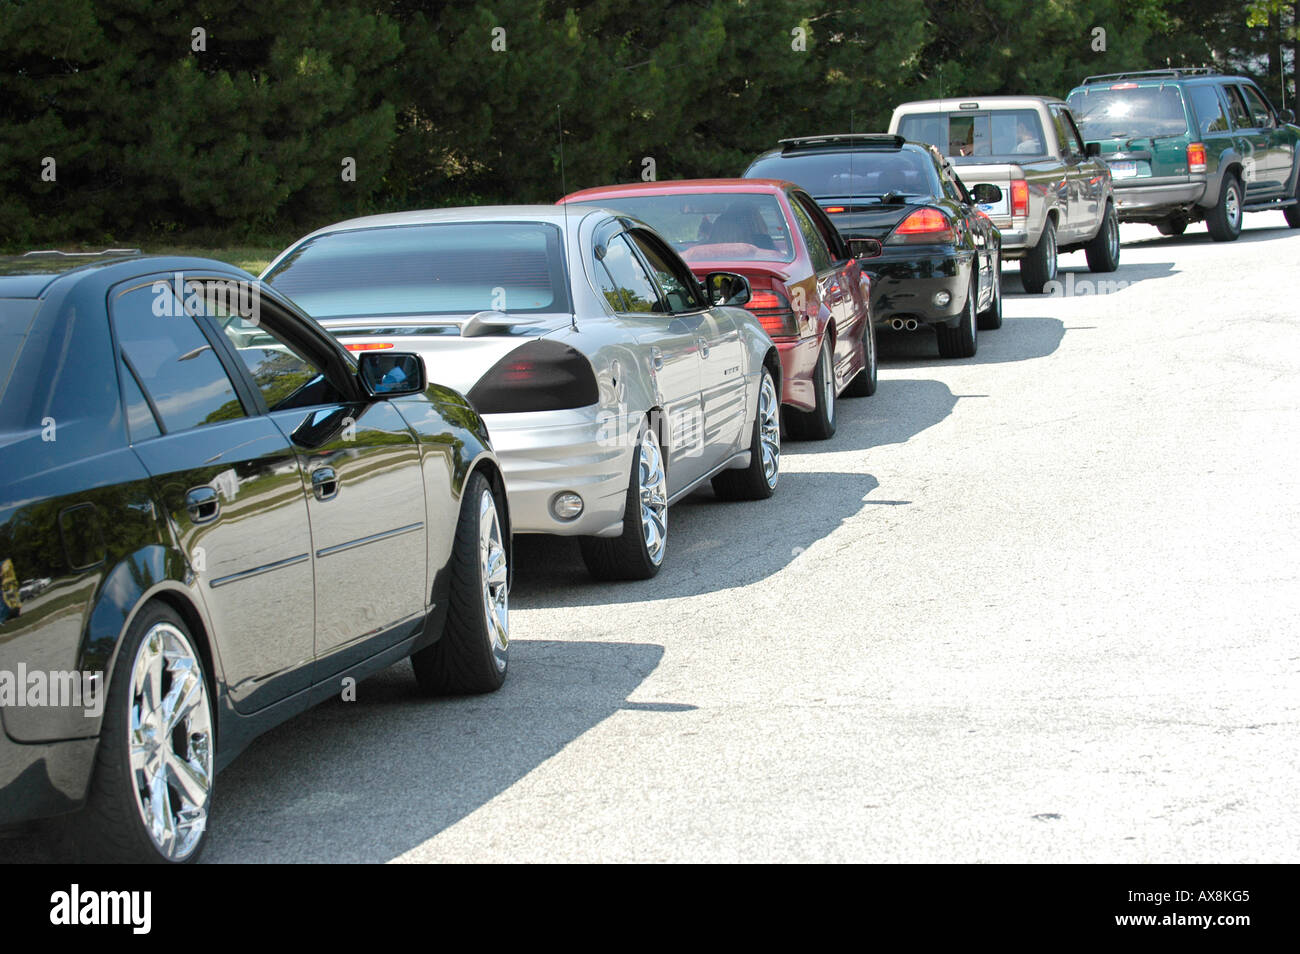 Line of cars waiting to buy gasoline Stock Photo: 9580100 - Alamy